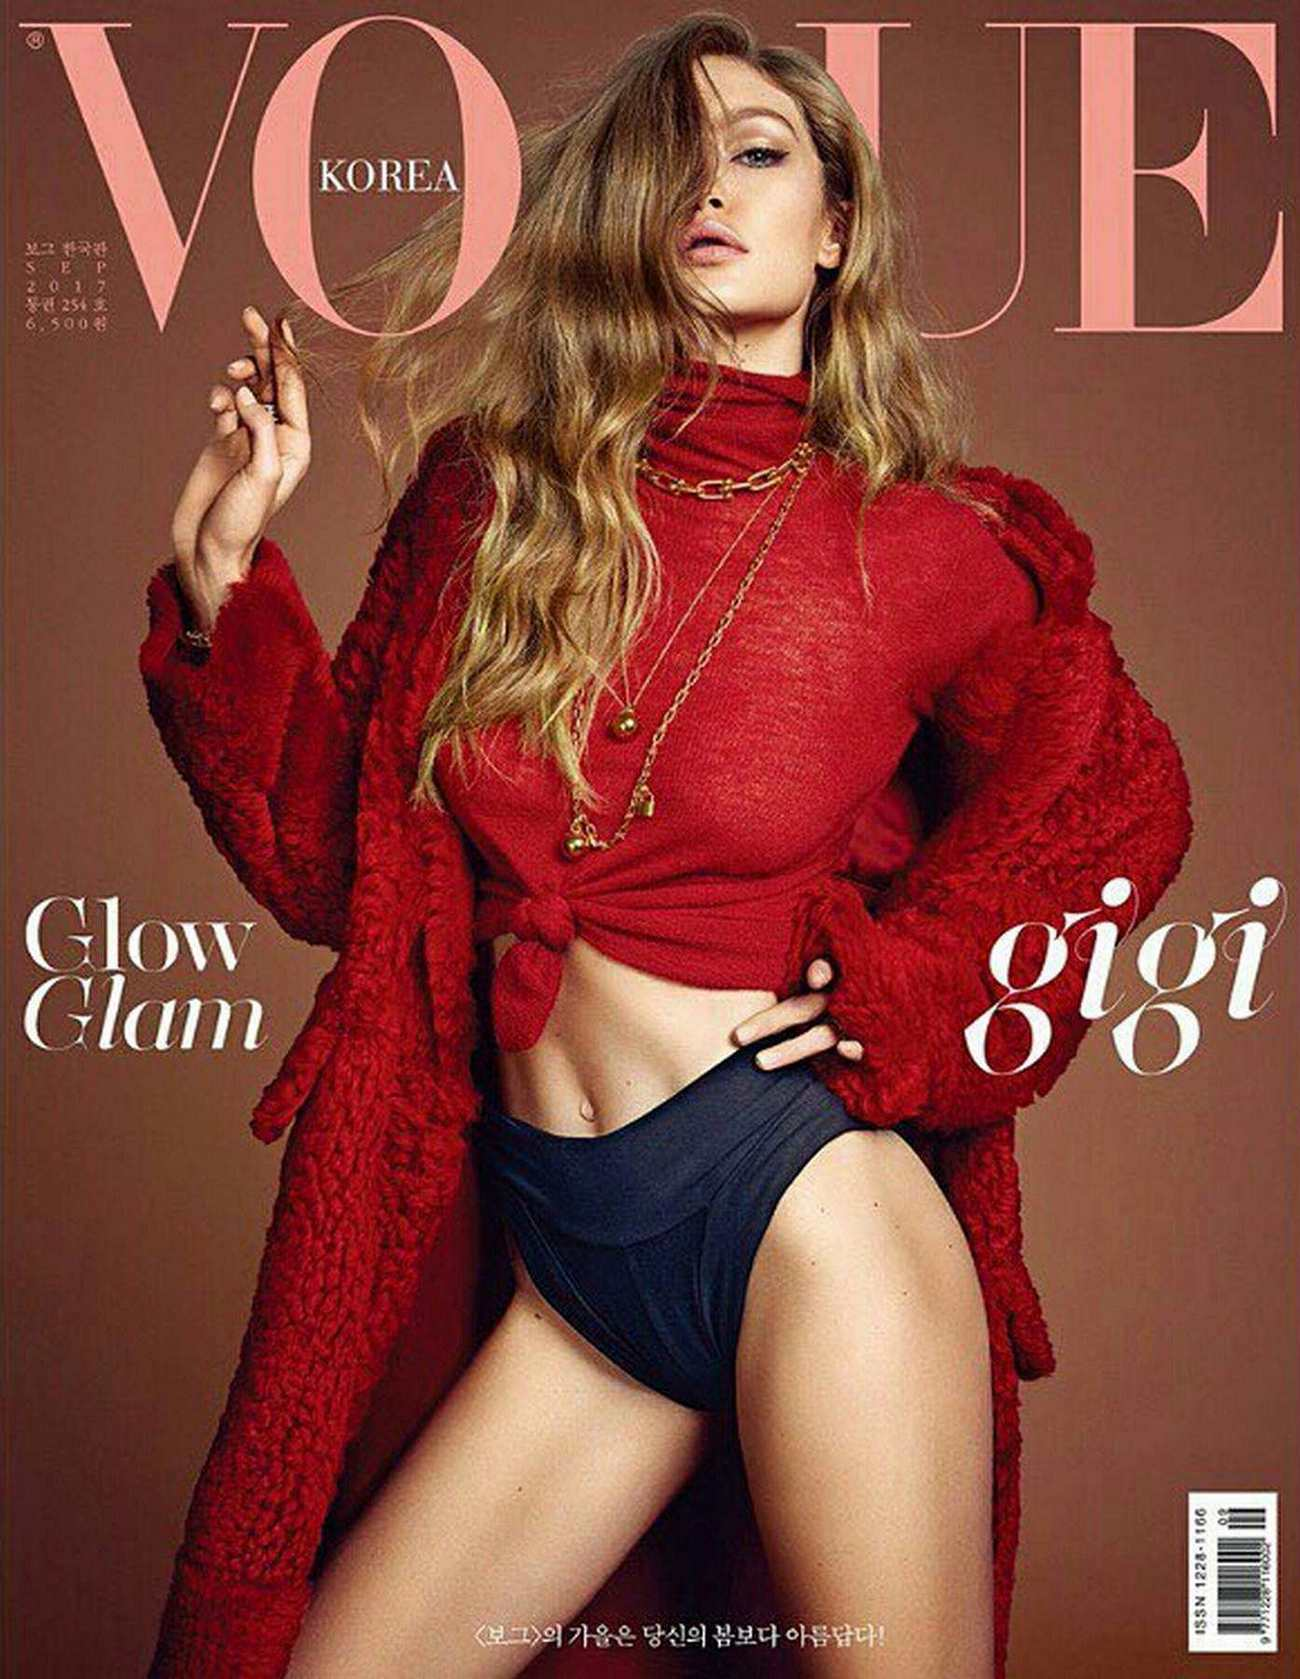 gigi-hadid-by-henrique-gendre-for-vogue-korea-september-2017-02